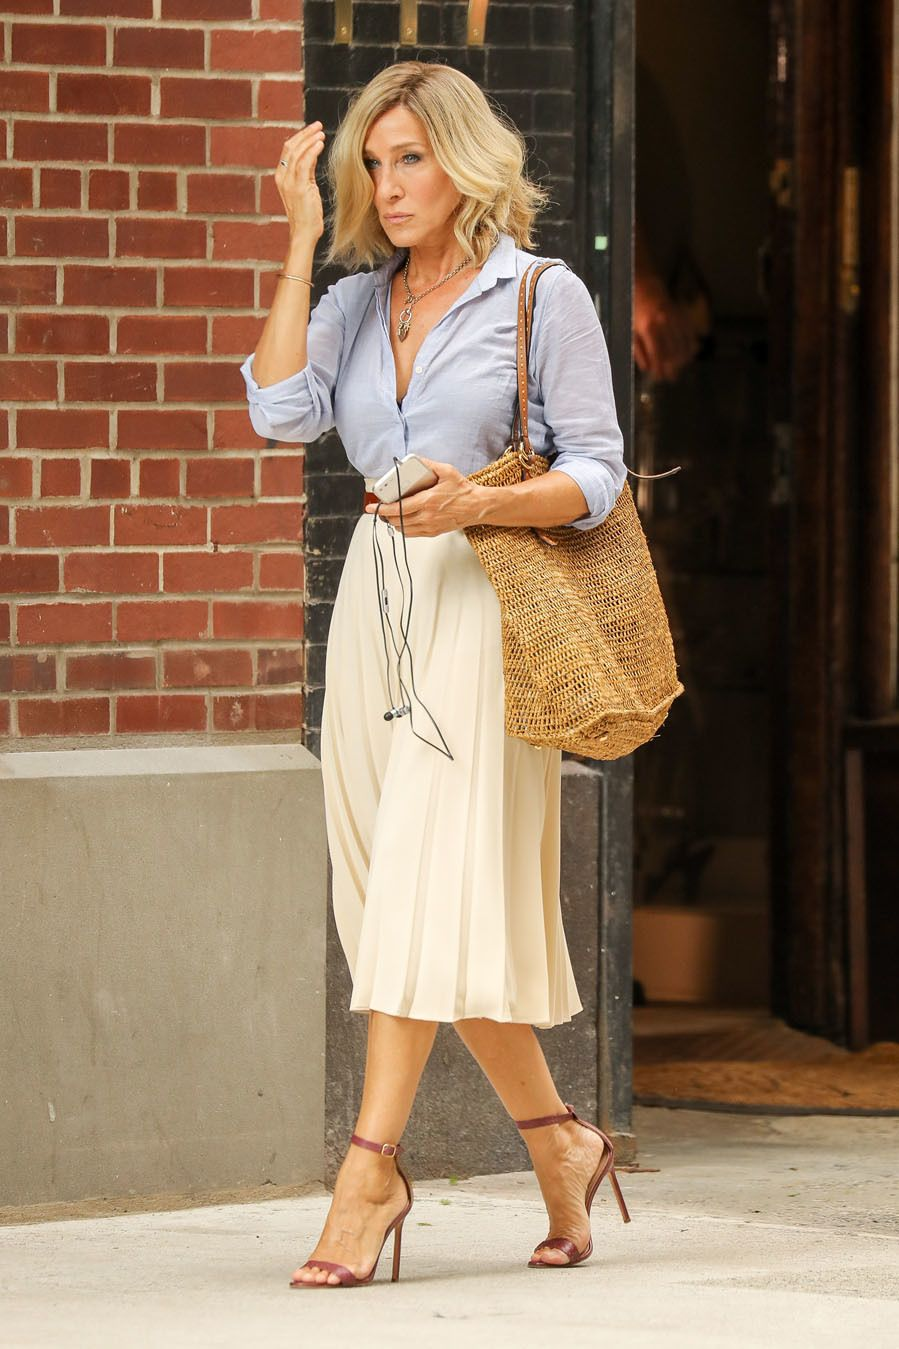 Sarah Jessica Parker looks effortlessly chic in a gray